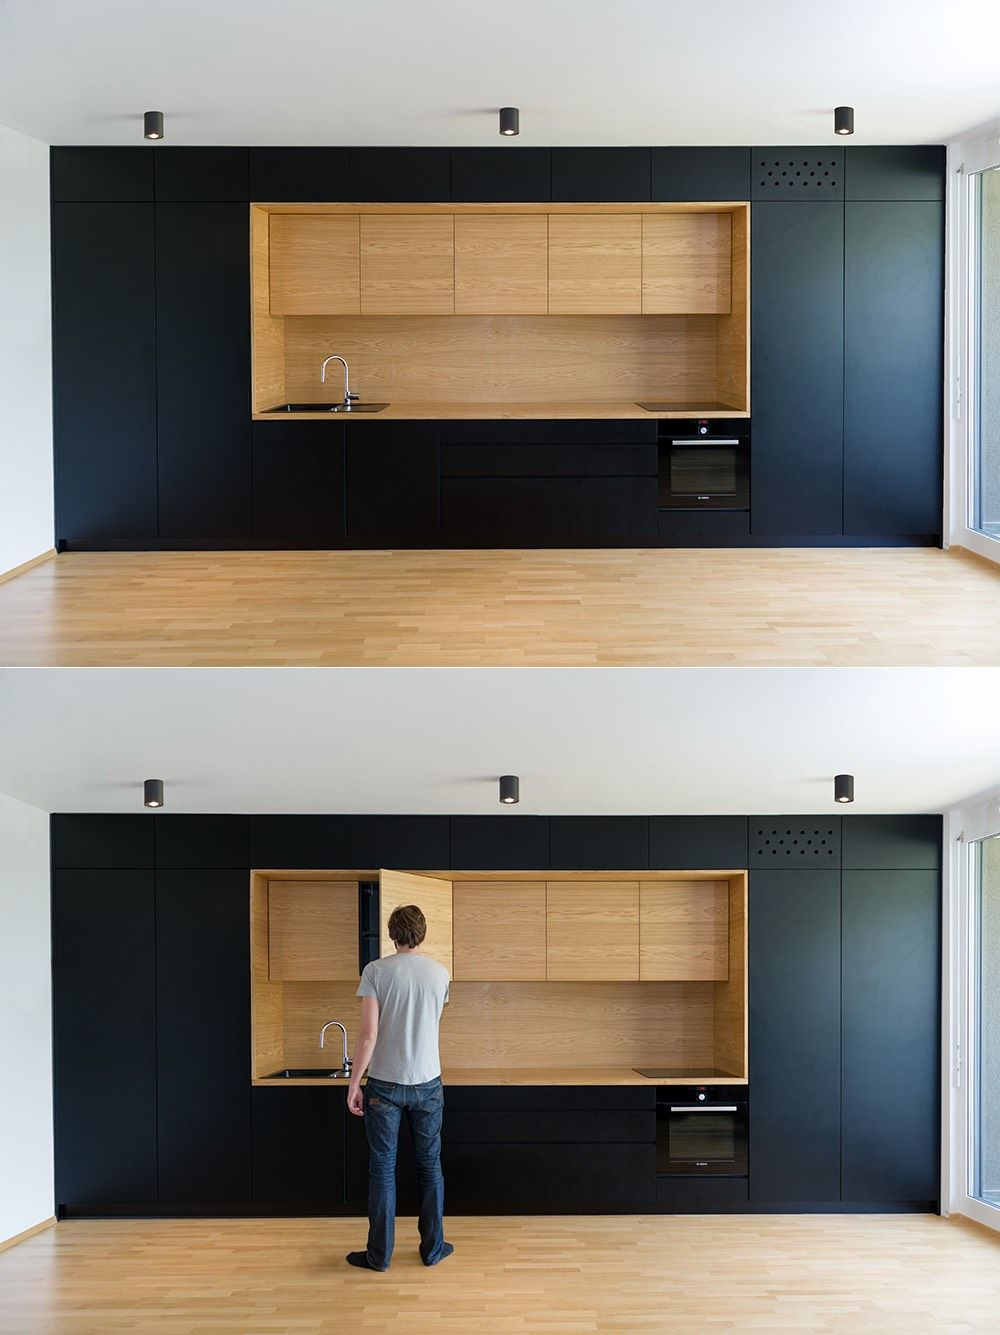 Black And Wood As Used Here Are Entirely Minimalist With Every Kitchen Item Hidden Carefully Away In Recessed Cabinets